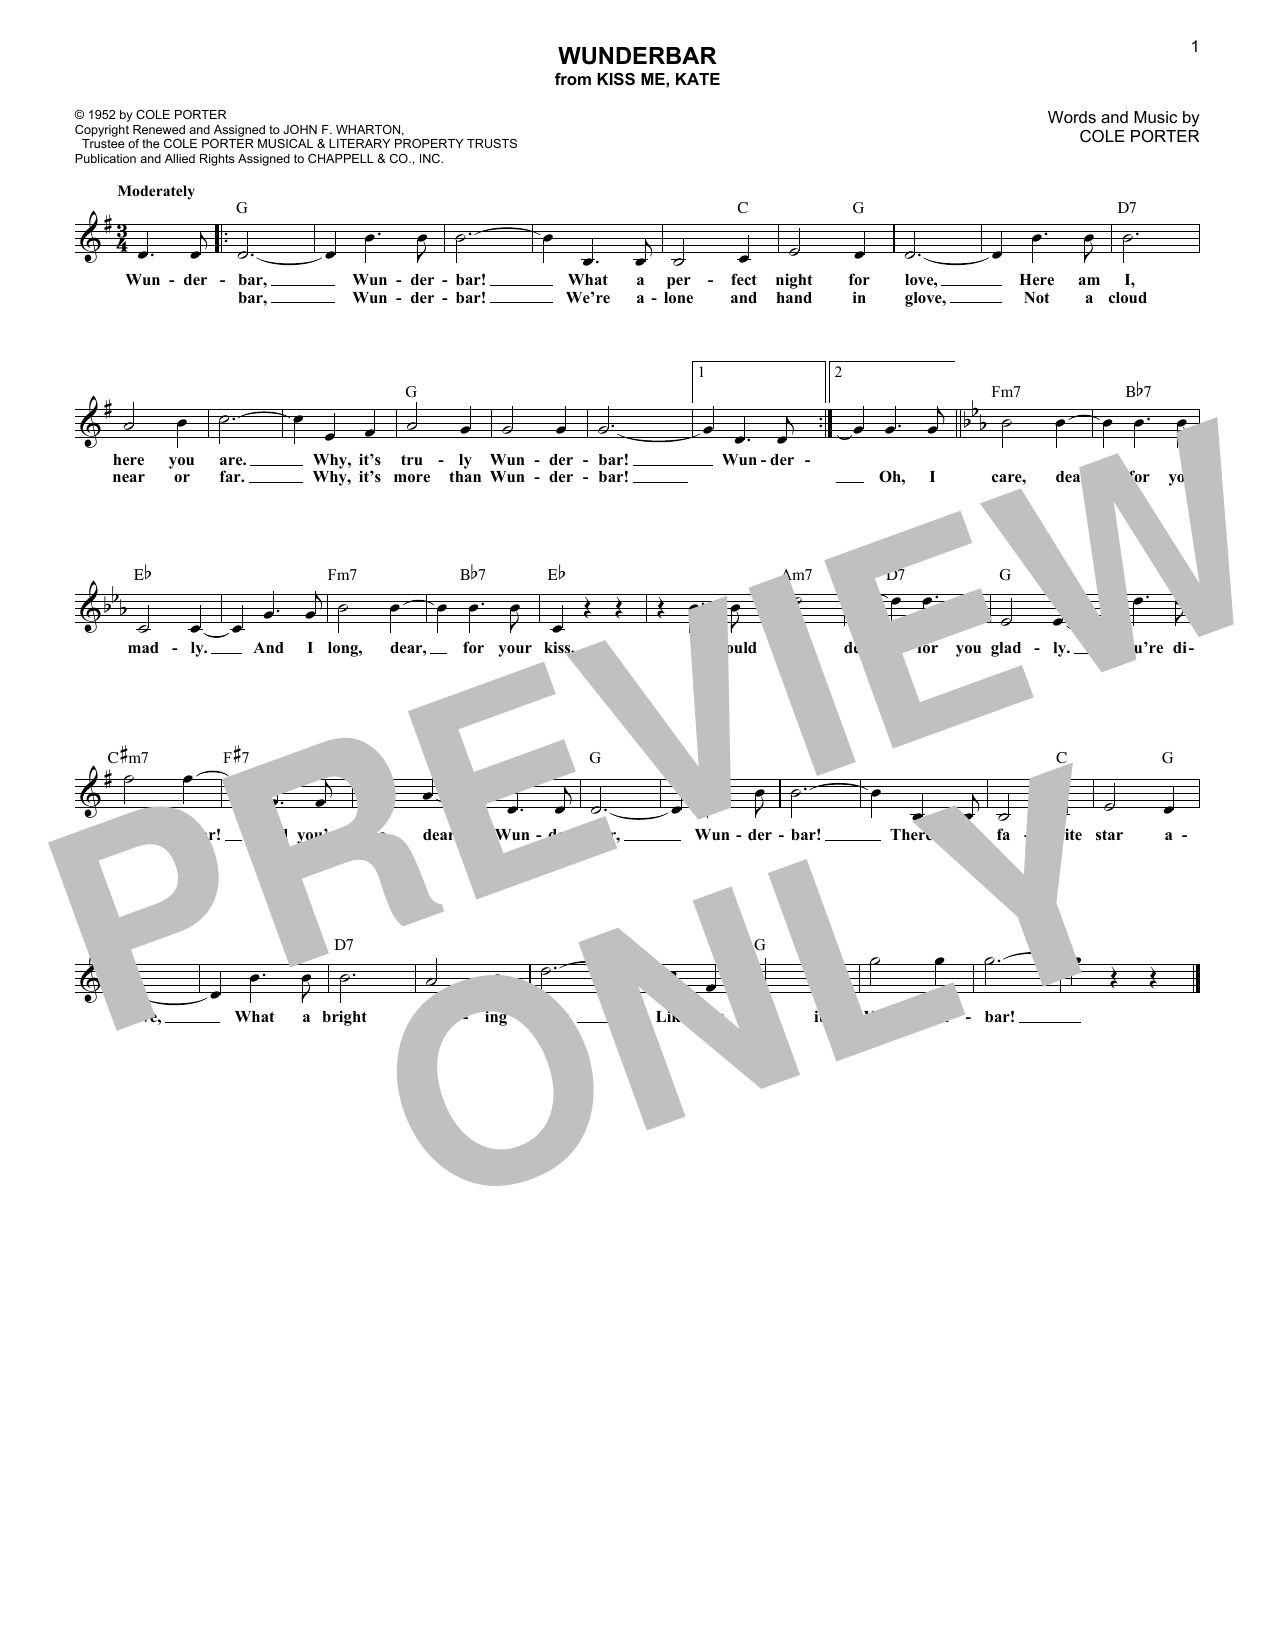 Wunderbar (Melody Line, Lyrics & Chords)